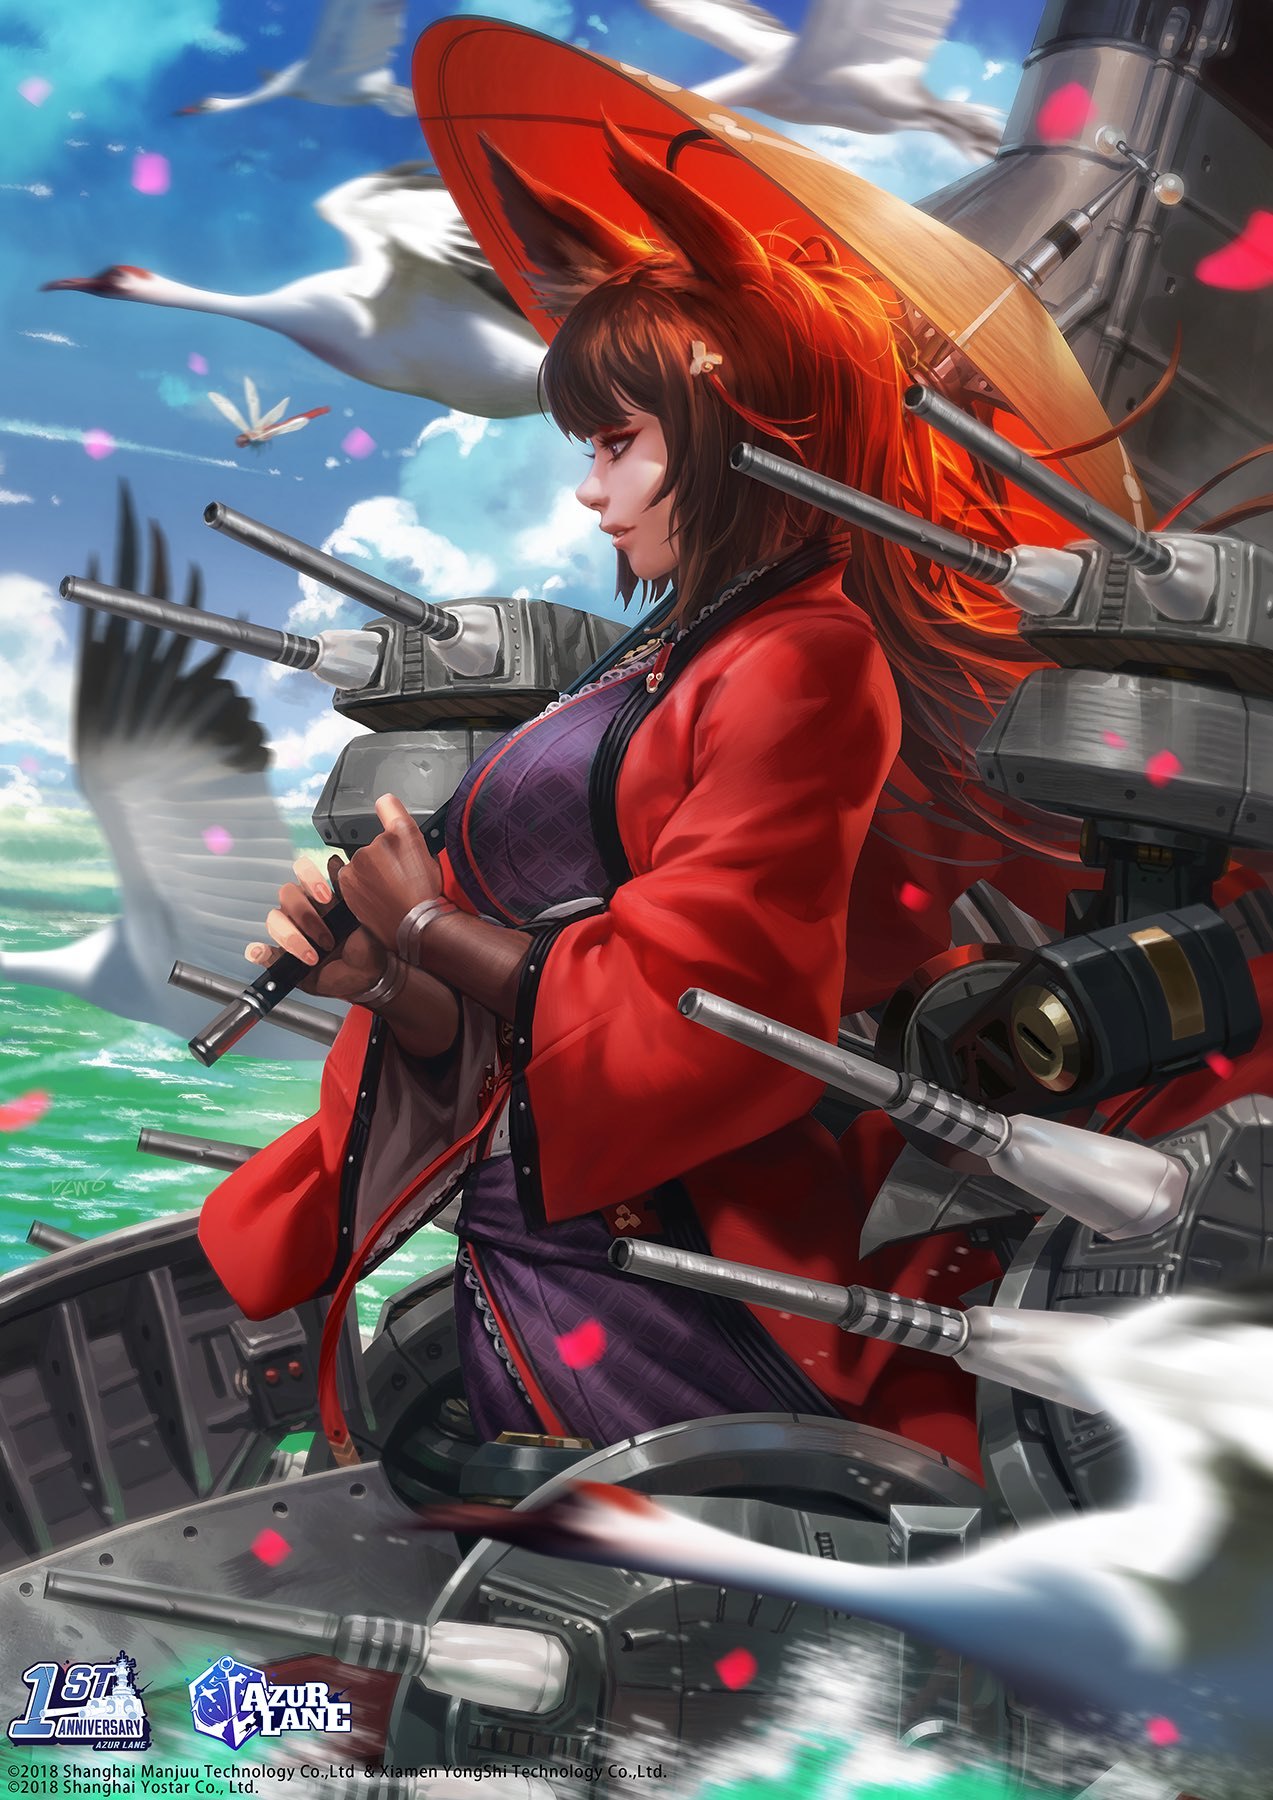 1girl amagi_(azur_lane) animal_ear_fluff animal_ears azur_lane bangs bird blunt_bangs blurry breasts brown_gloves brown_hair bug cannon choker crane_(animal) day dcwj depth_of_field dragonfly fox_ears from_side gloves hair_ornament highres holding holding_umbrella insect japanese_clothes kimono large_breasts logo long_hair looking_afar obi official_art outdoors parasol parted_lips partly_fingerless_gloves rigging sash solo splashing thick_eyebrows turret umbrella violet_eyes water watermark wide_sleeves